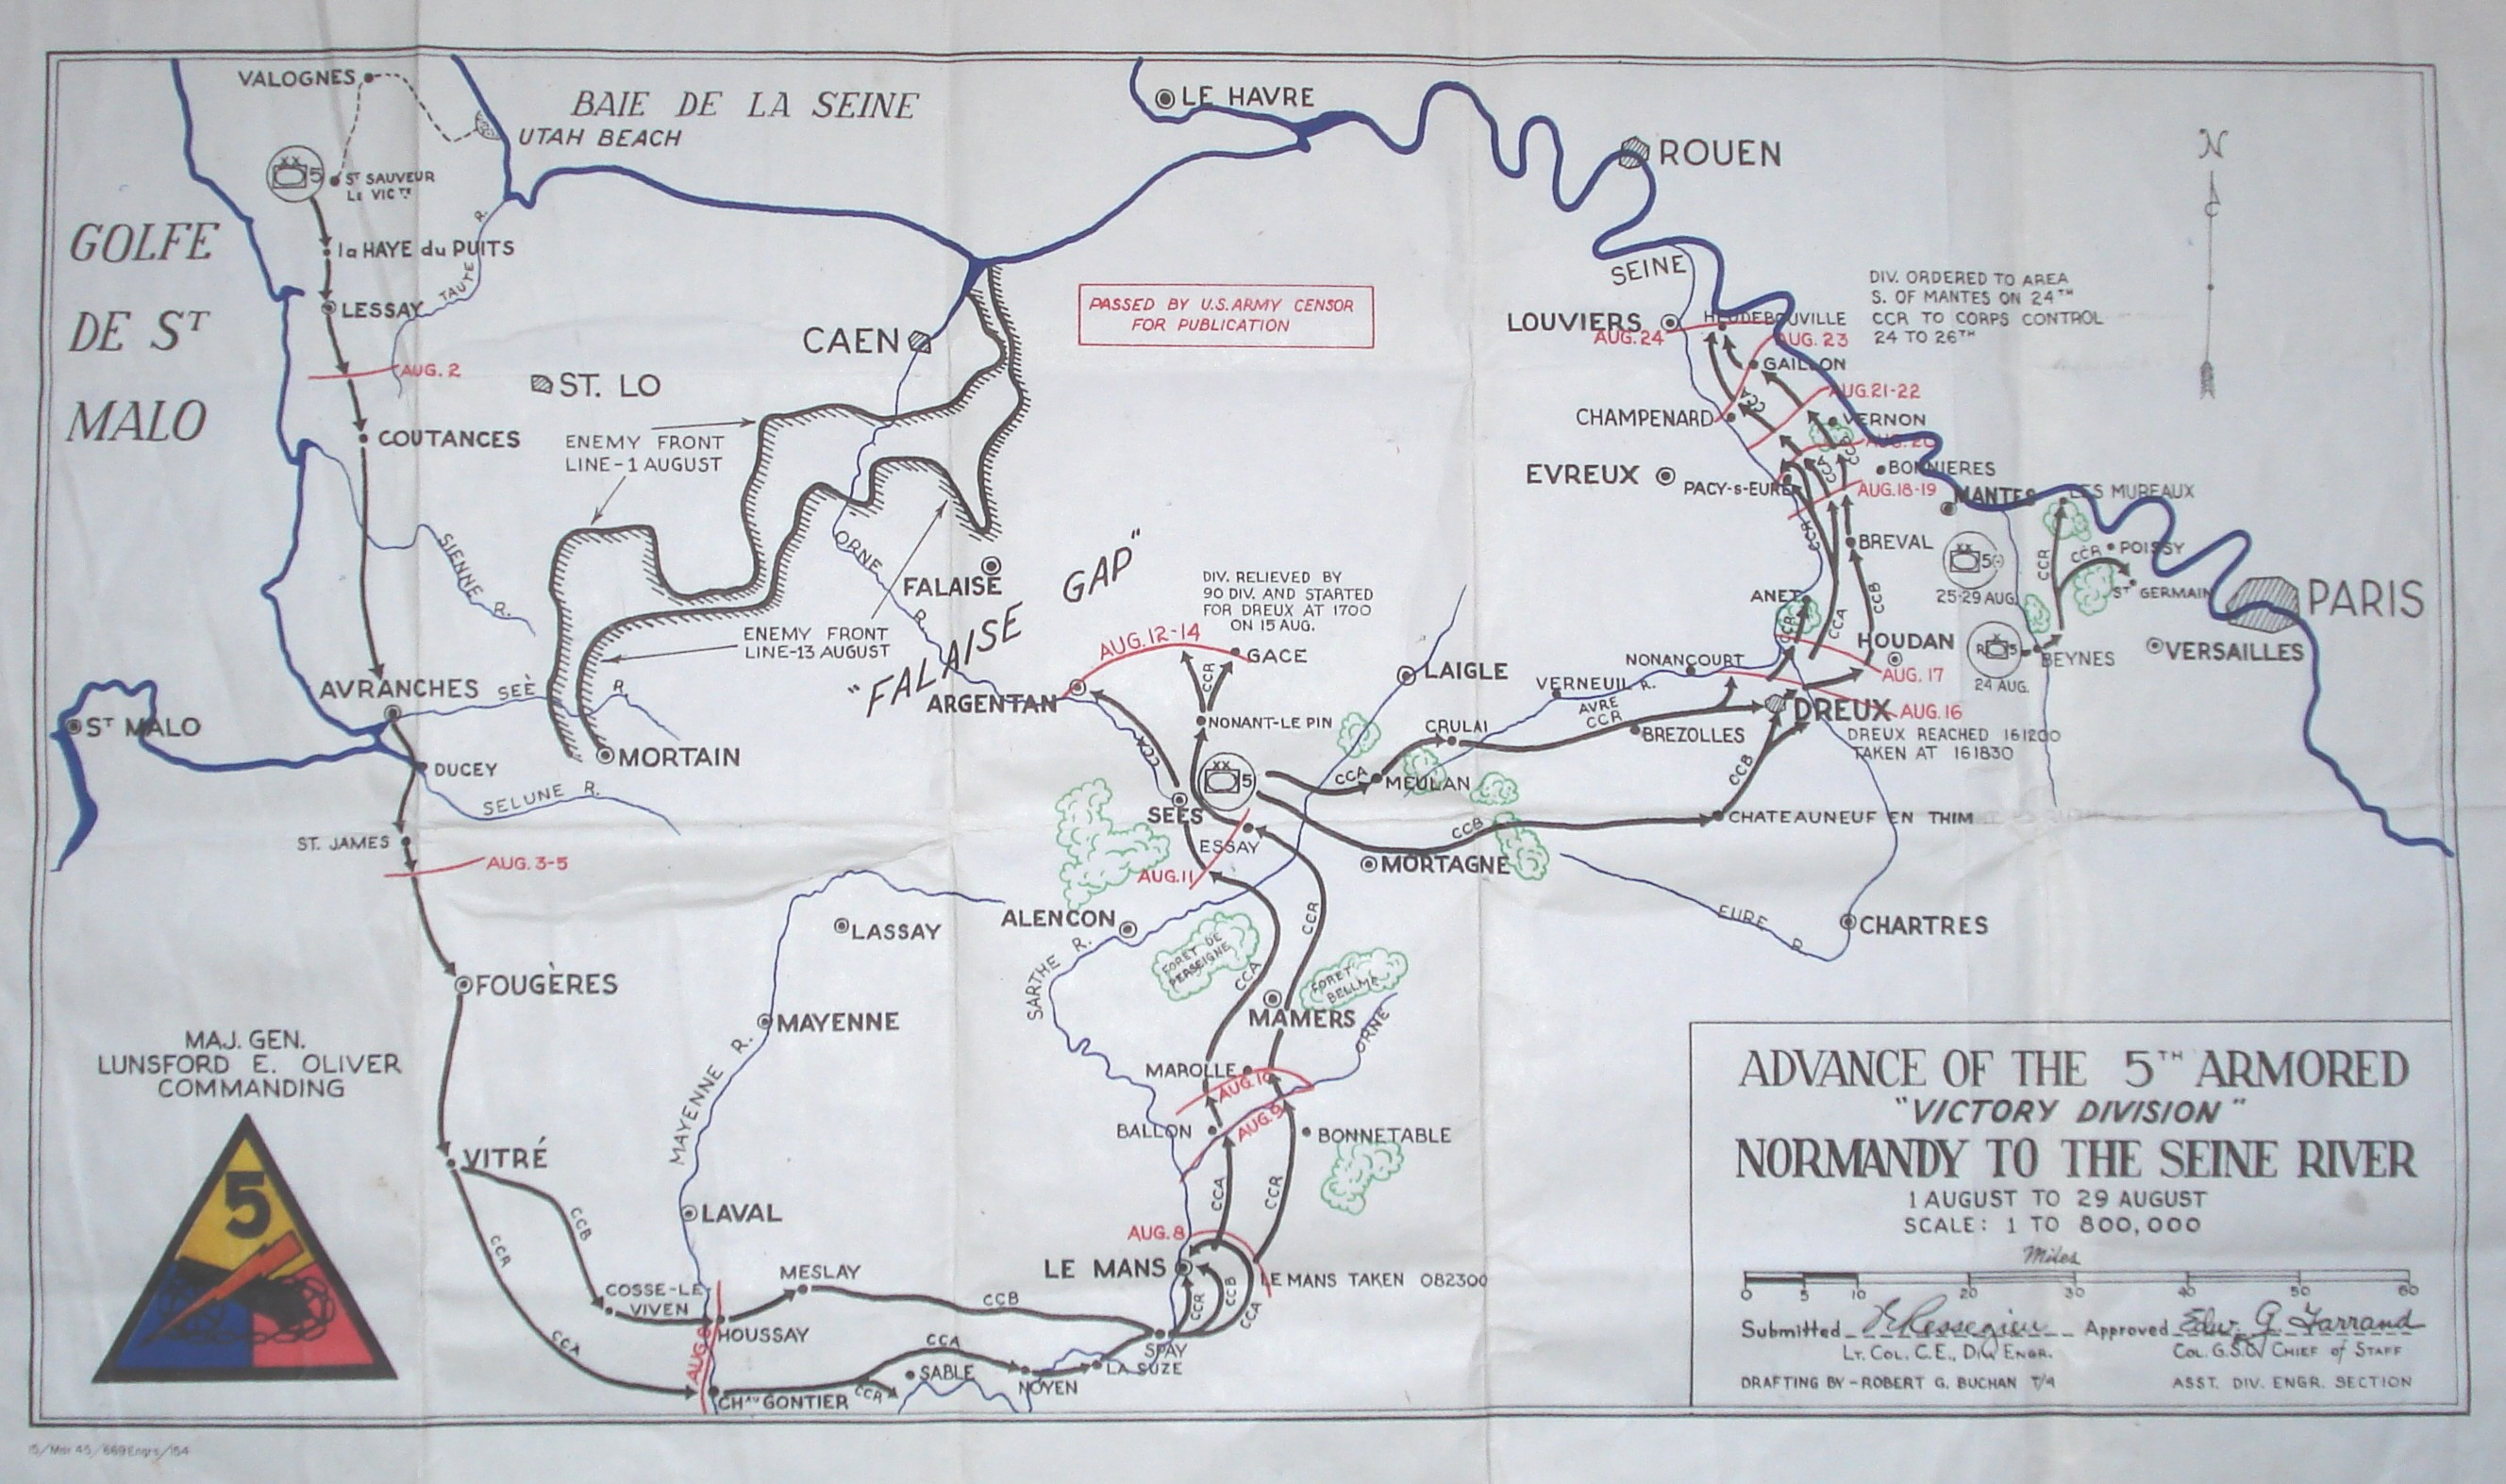 5th Armored Division from Normandy to the Seine River Map from the 5th AD website